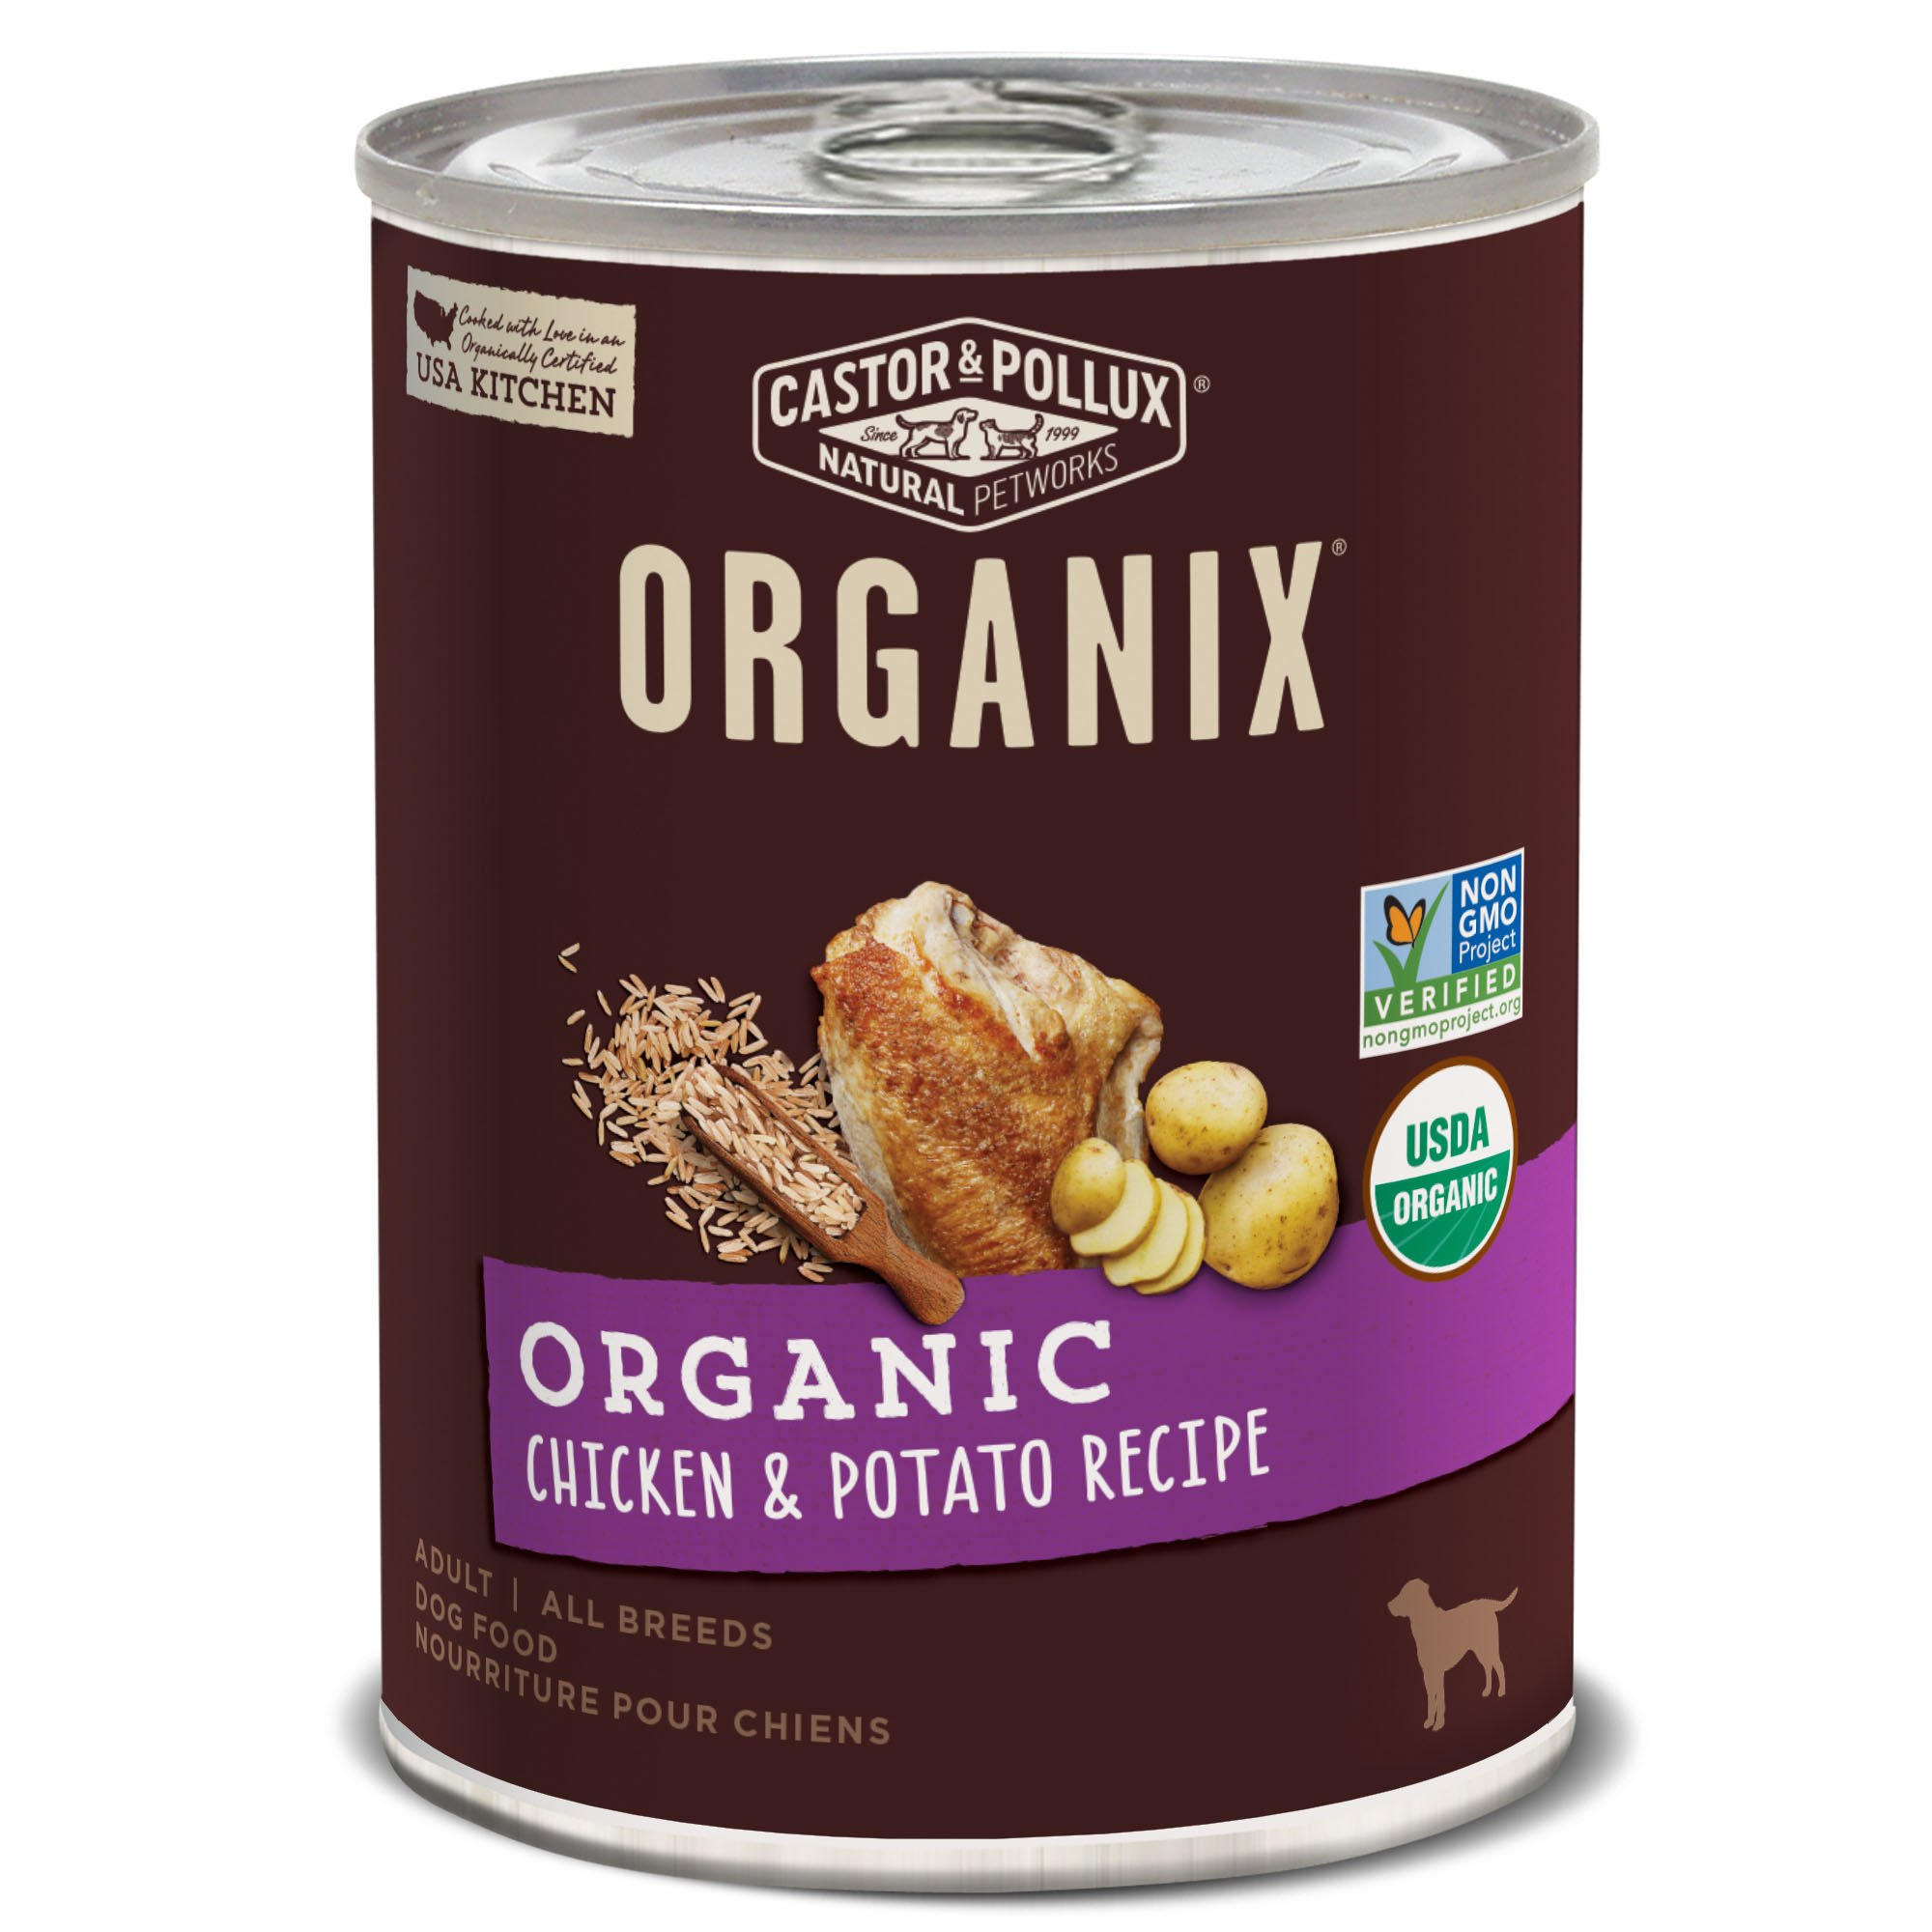 Castor & Pollux Organix Chicken and Potato Adult Dog Food, 12.7 Ounce Cans (Pack of 12) by organix